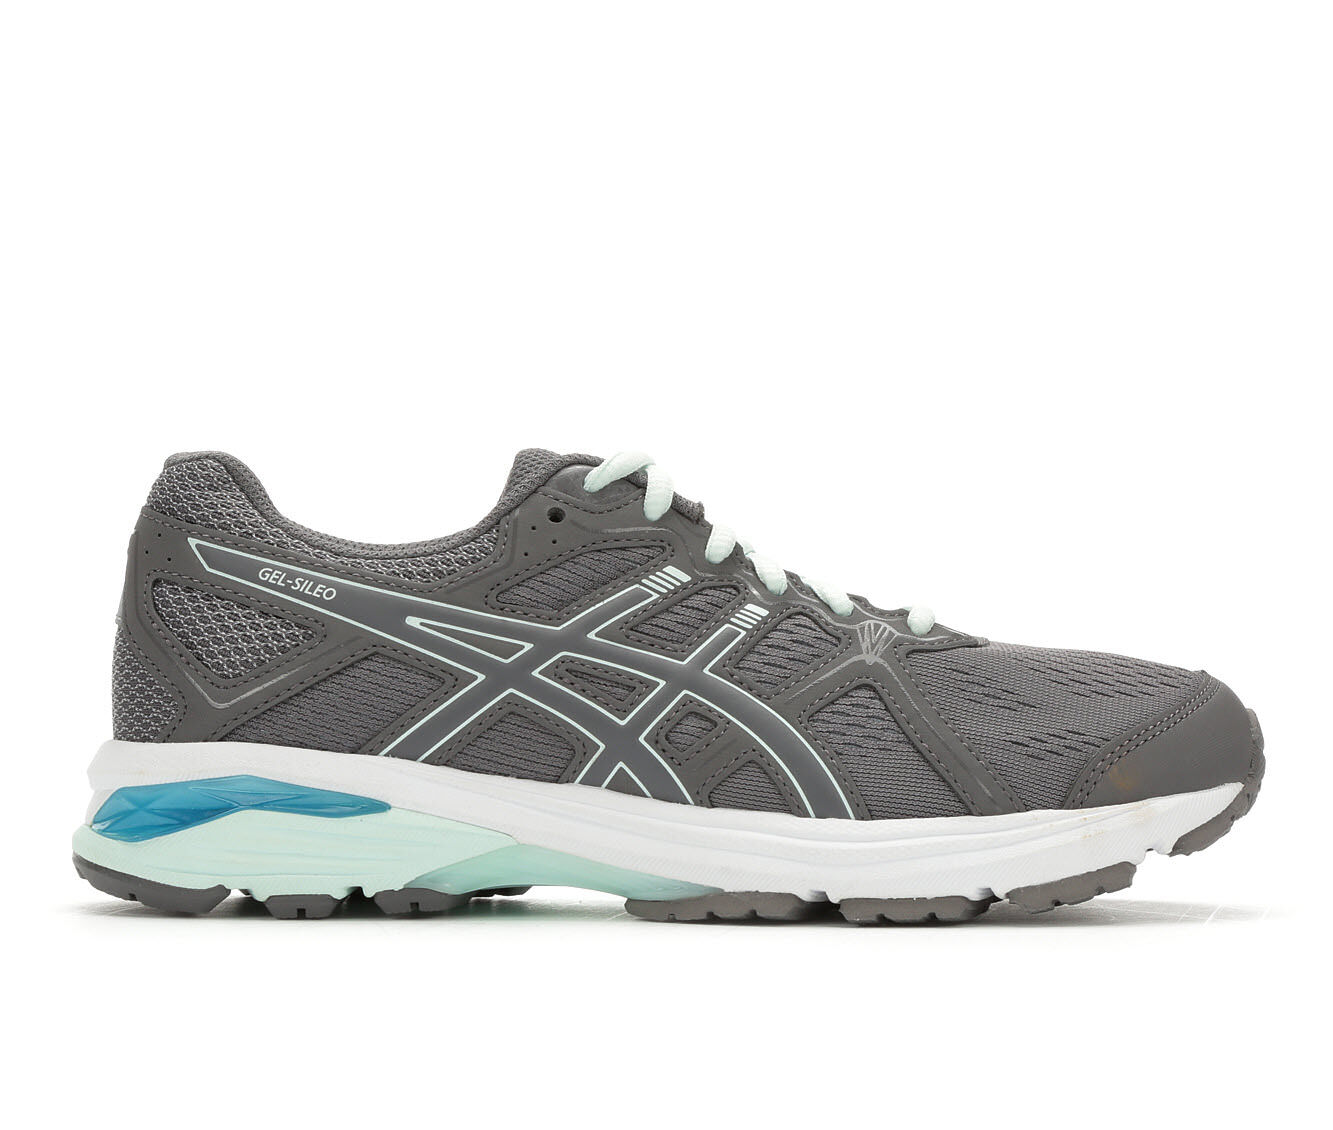 UK Outlet Women's ASICS GT Xpress Running Shoes Carbon/Sea/Wht